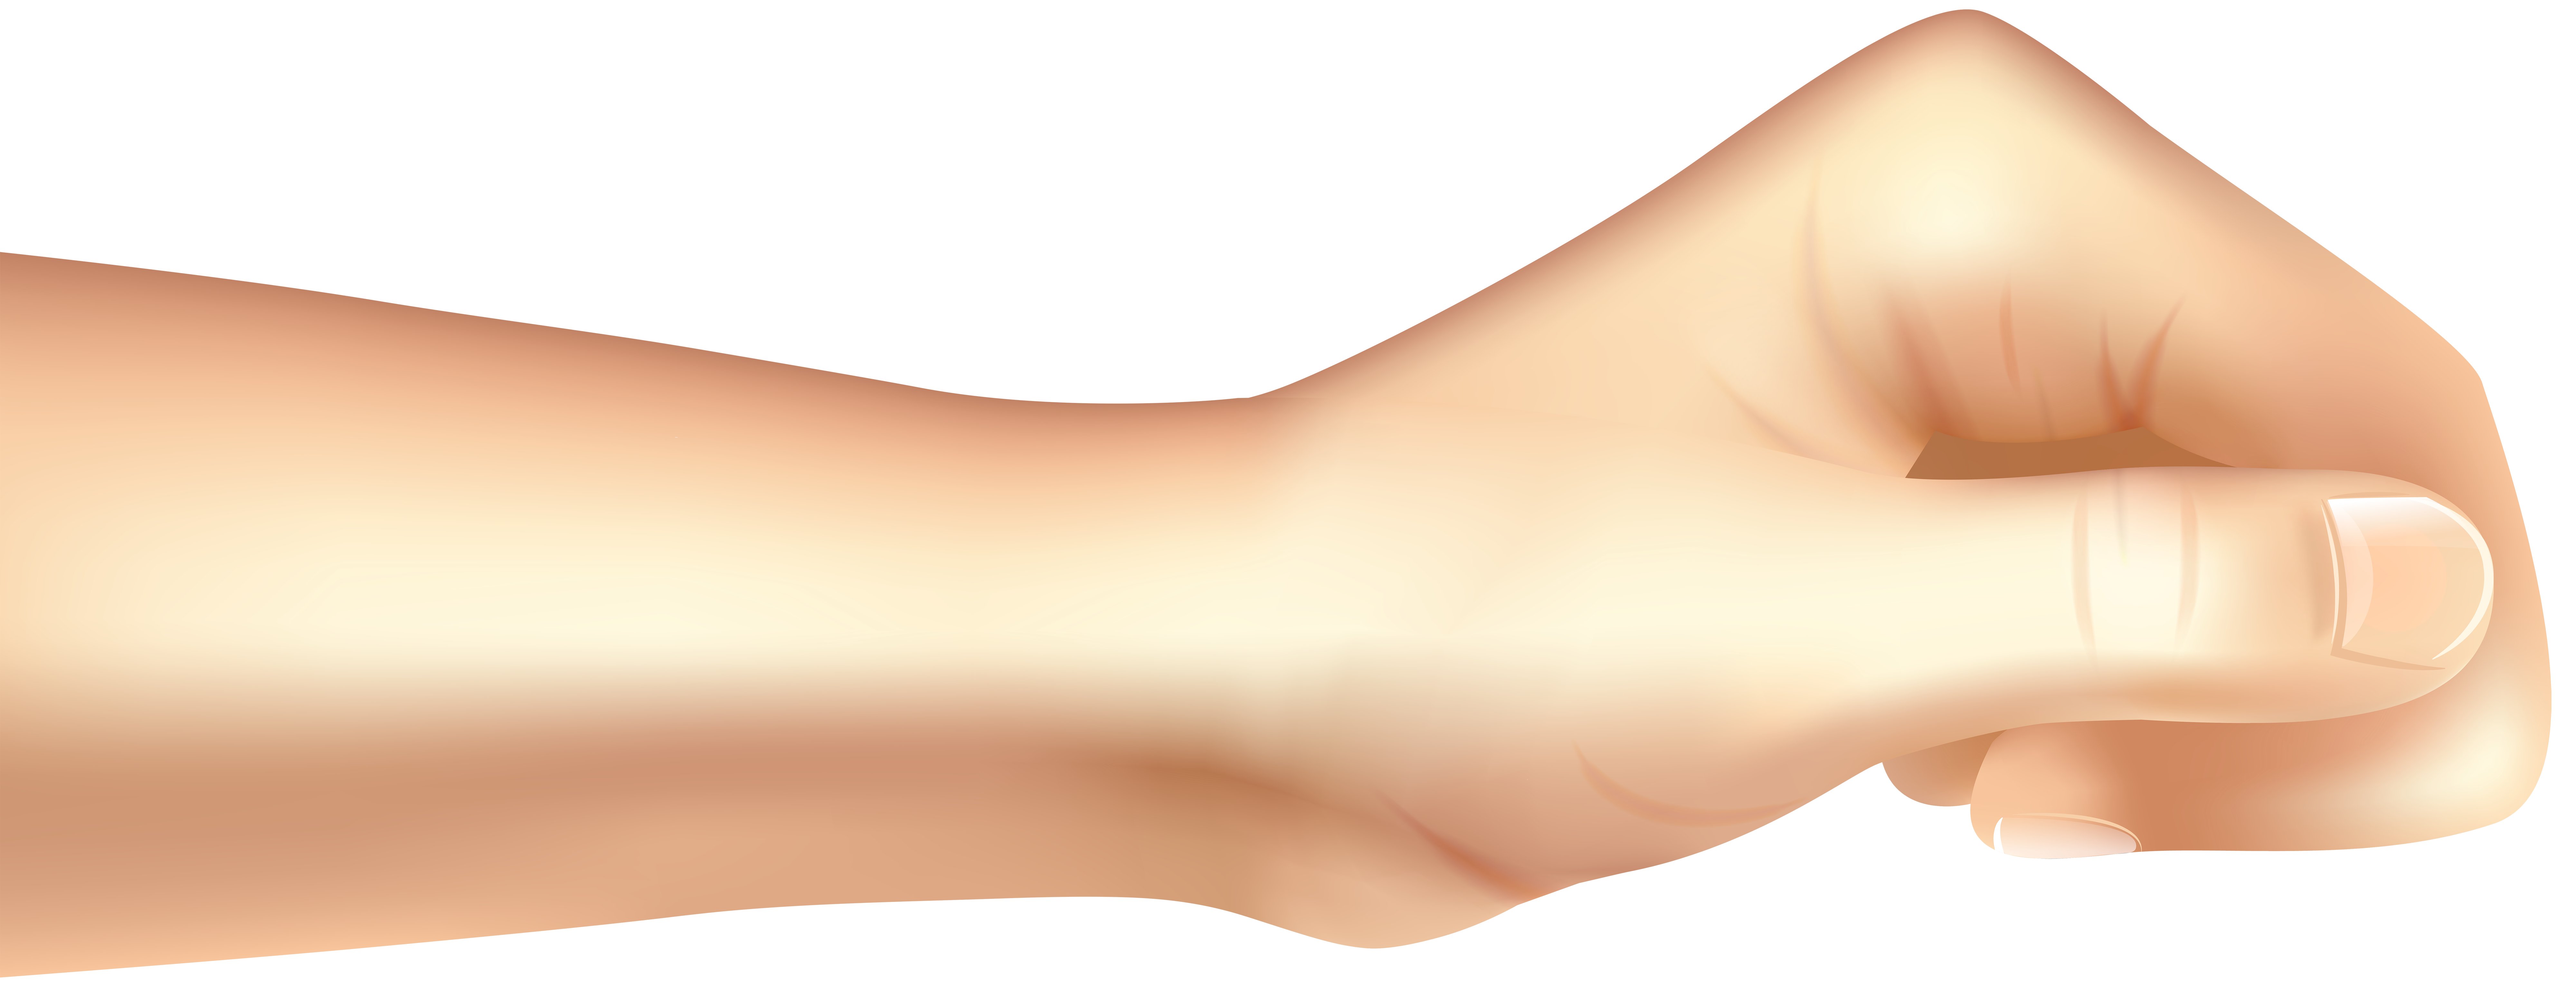 Skin clipart single hand. Giving png clip art